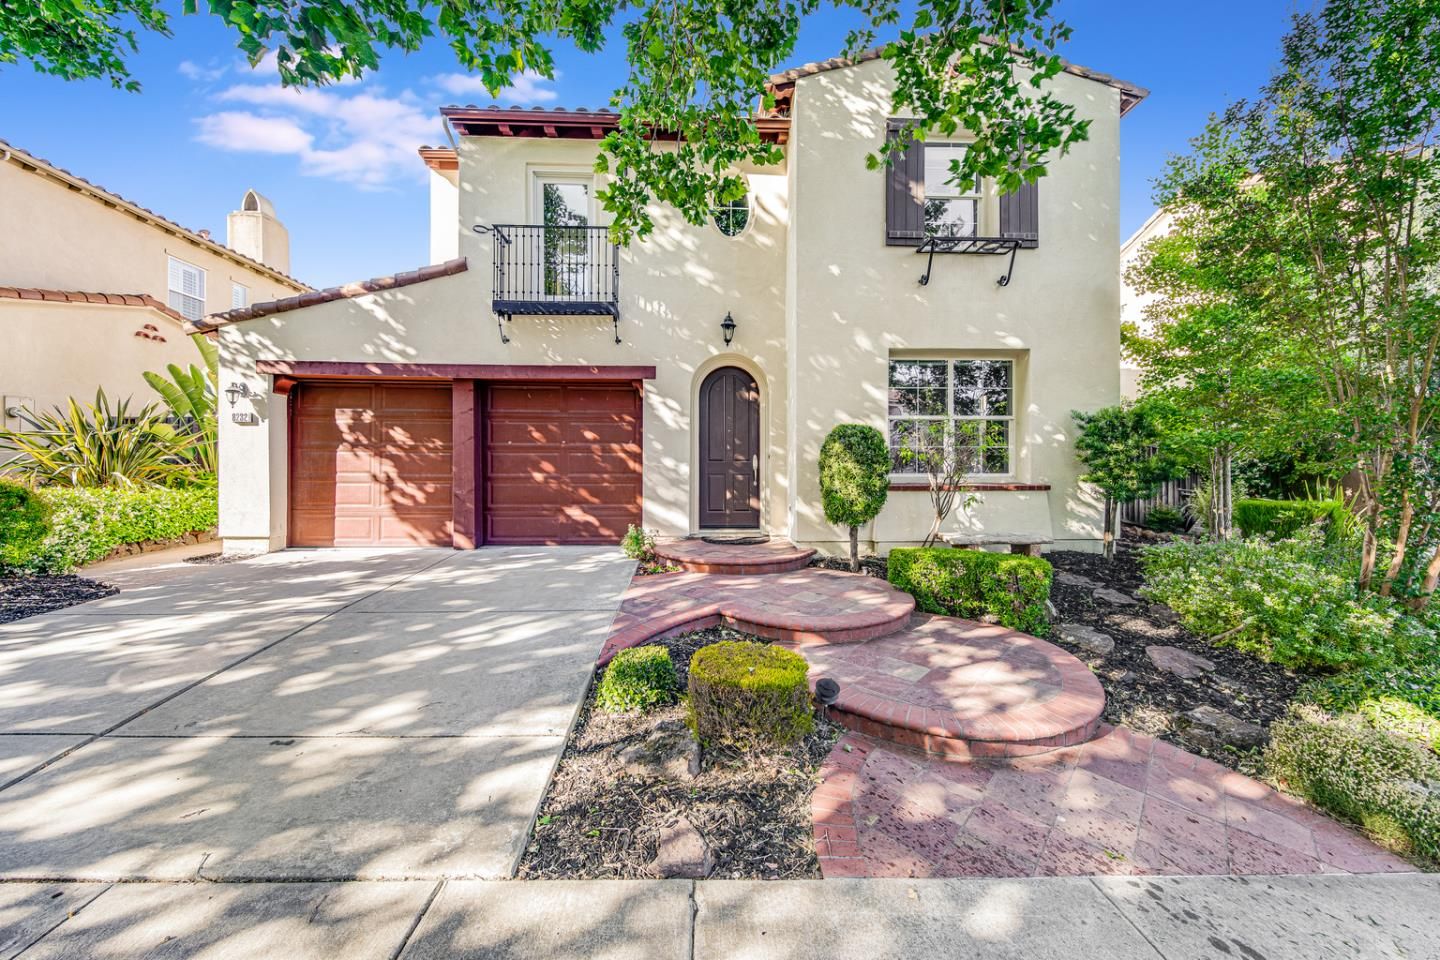 Welcome home to 8232 Saturn Park Drive, this beautiful property is situated in the desirable Gale Ranch community surrounded by some of the best amenities San Ramon has to offer. With award winning schools like Dougherty Valley High, fine dining at the Bridges golf course, and shopping at the Bishop Ranch. As you enter the home, the separate dining area is perfect for intimate dining. The kitchen has upgraded granite countertops, white cabinetry and stainless steel appliances. Large family room is naturally bright with multiple double pane windows and high weave thick carpets, perfect for entertaining guests. As you walk upstairs, the oversized primary bedroom overlooks the meticulously landscaped backyard--with fruit trees such as orange, lemon, and pomegranate. Large primary bathroom has plenty of storage and two walk-in closets. Other features include, indoor laundry room, full bathroom with double vanities and additional balcony area. Come see this amazing home today!